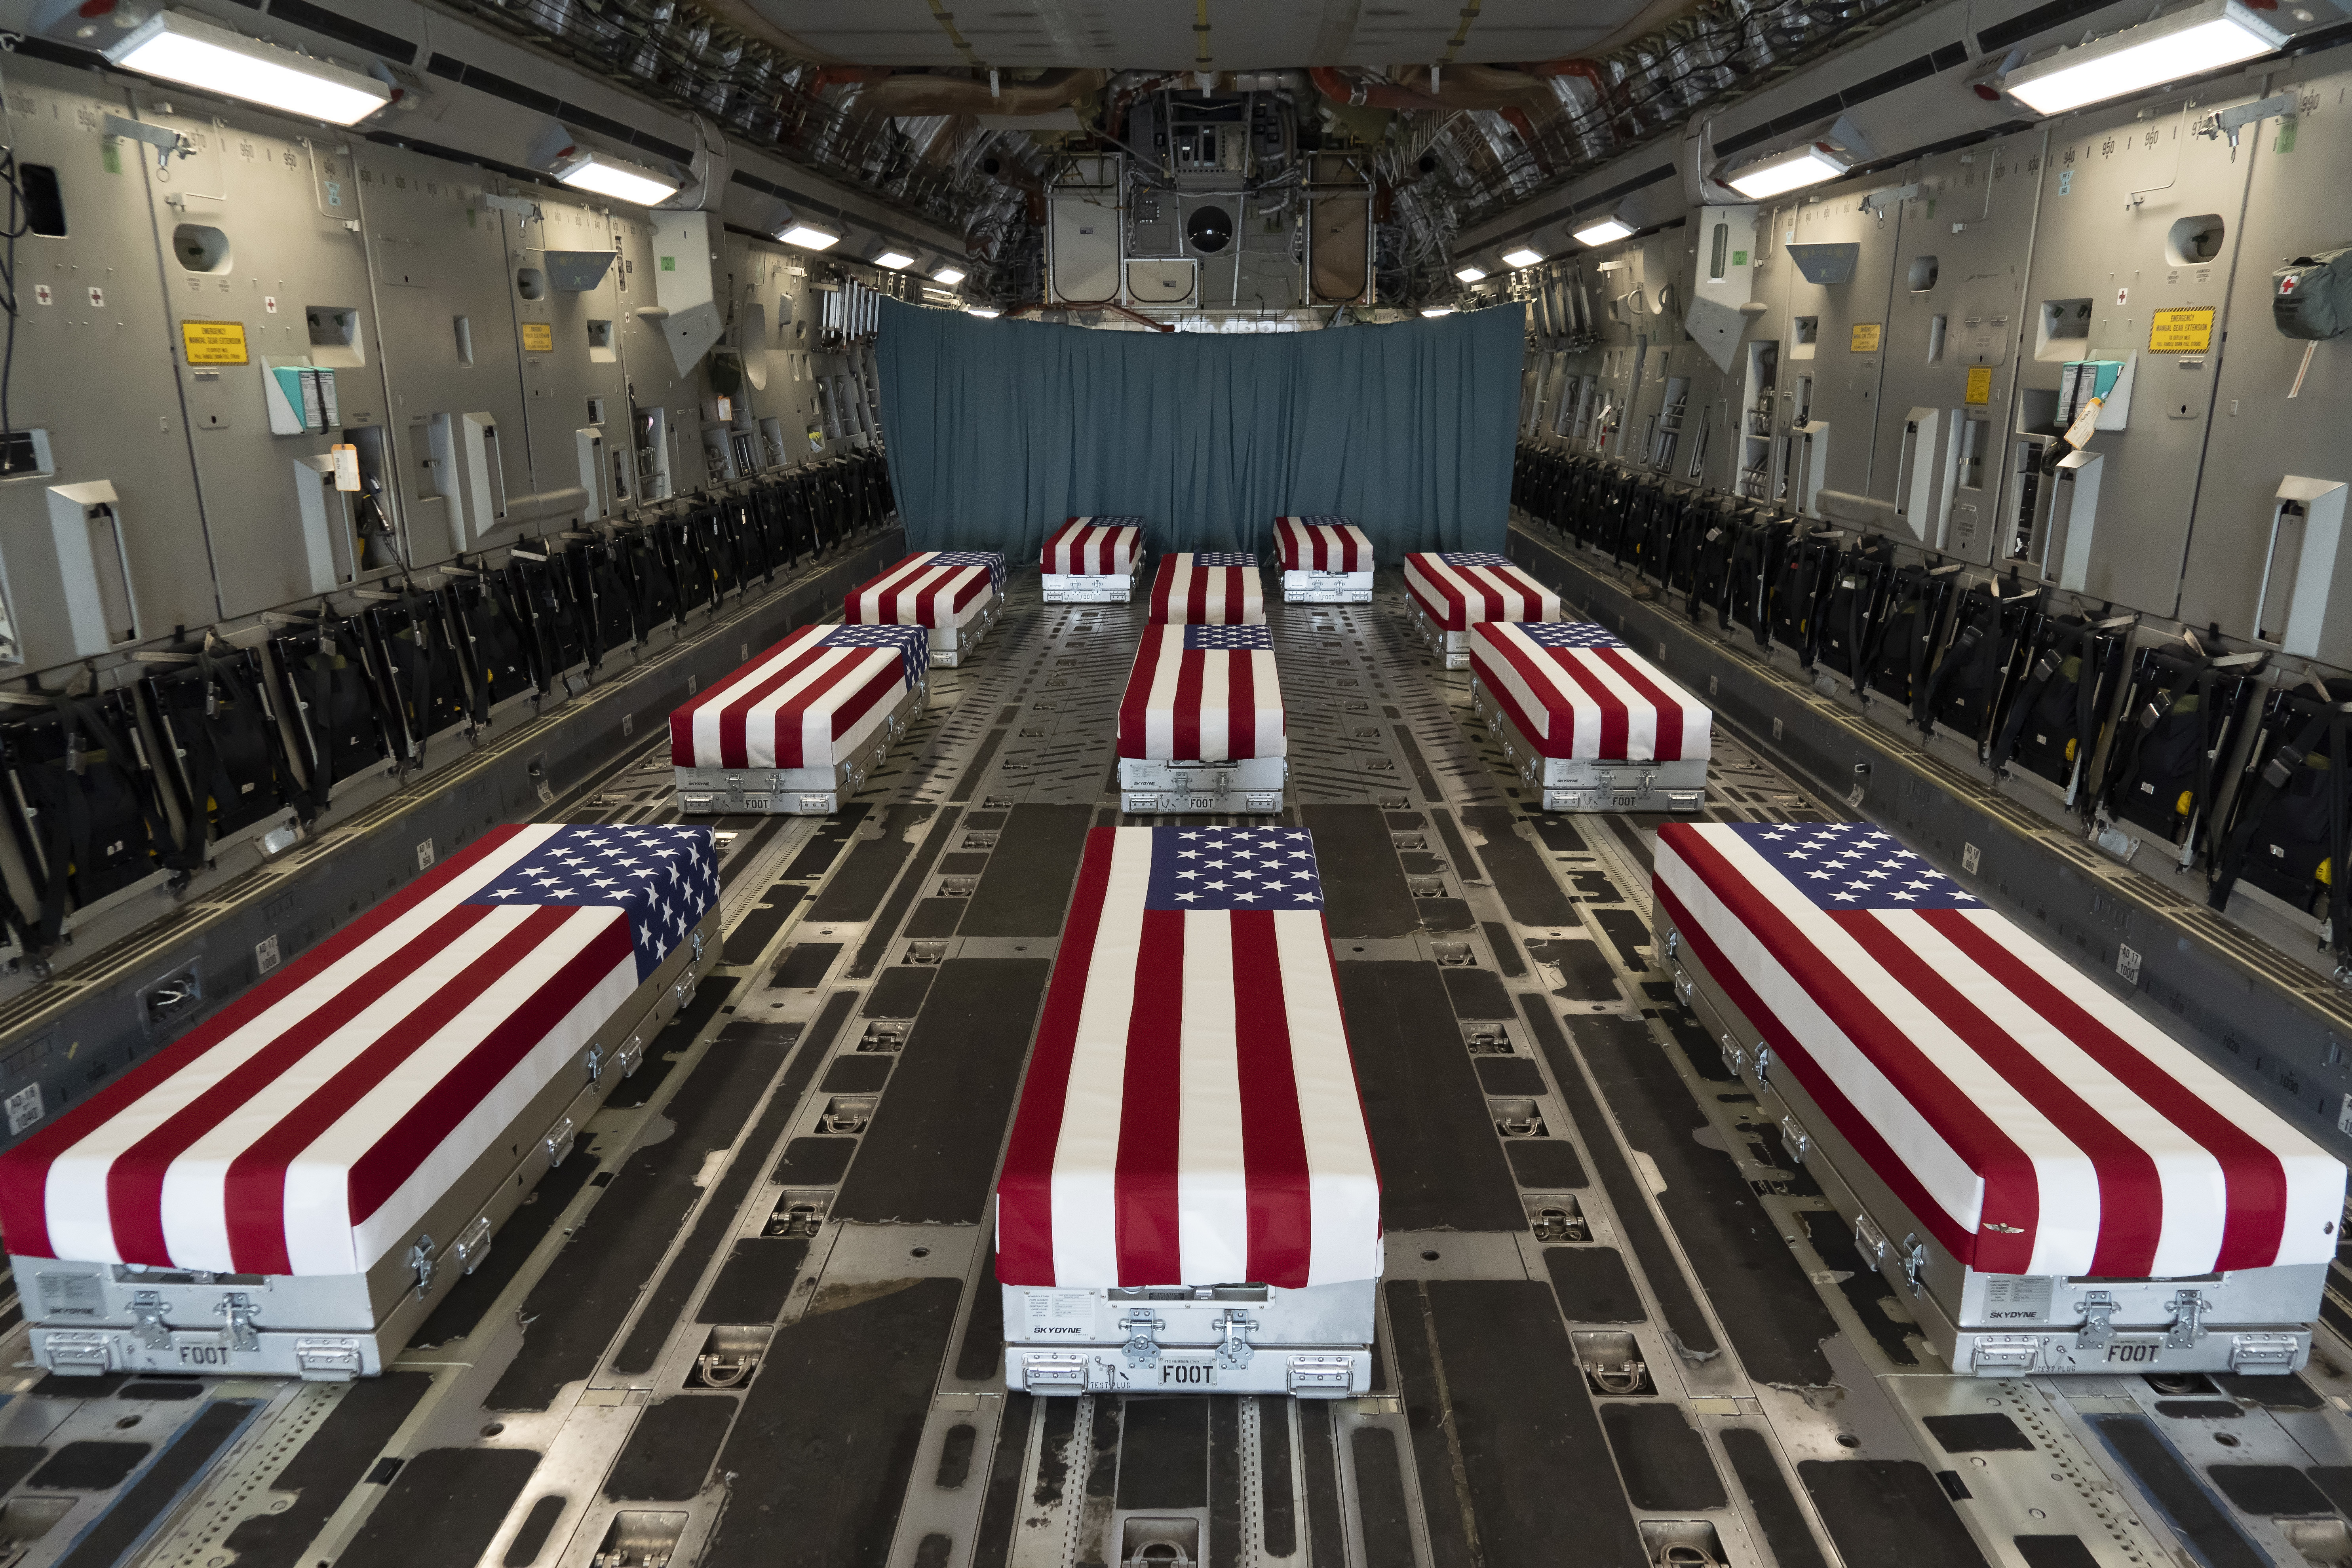 In this handout photo provided by the U.S. Air Force, flag-draped transfer cases line the inside of a C-17 Globemaster II prior to a dignified transfer at Dover Air Force Base, Delaware. (Photo by Jason Minto/U.S. Air Force via Getty Images)